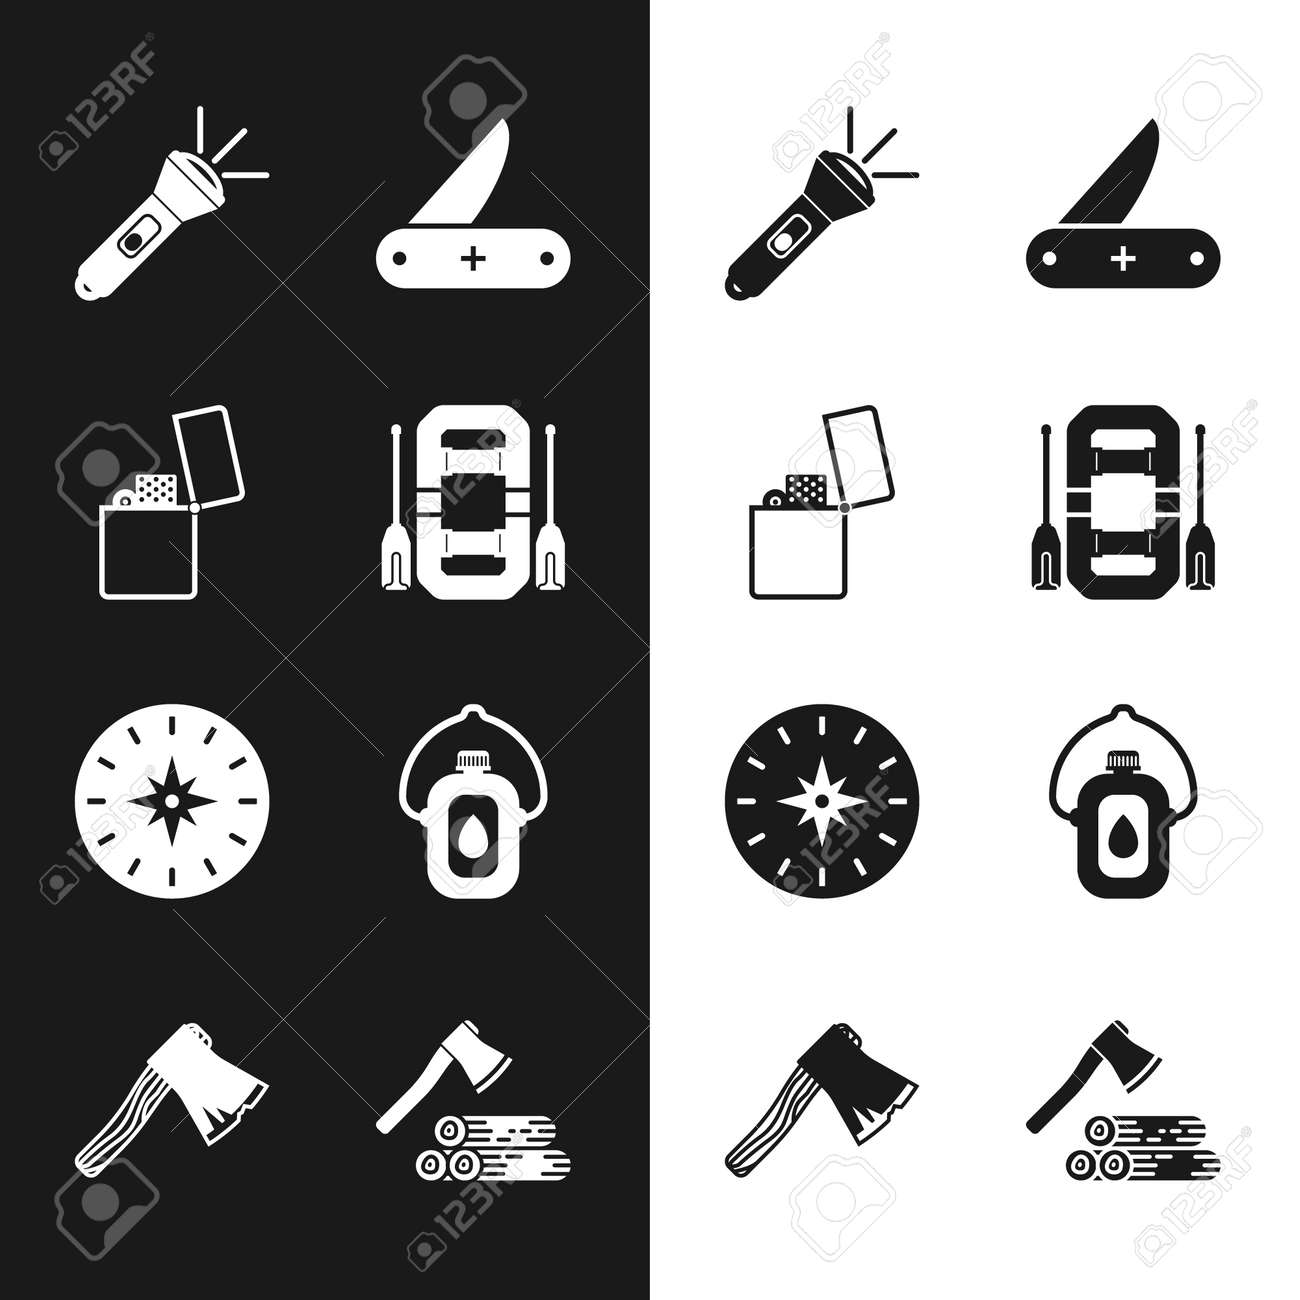 Set Rafting boat, Lighter, Flashlight, Compass, Canteen water bottle, Wooden axe and wood and Old wooden icon. Vector - 171781050